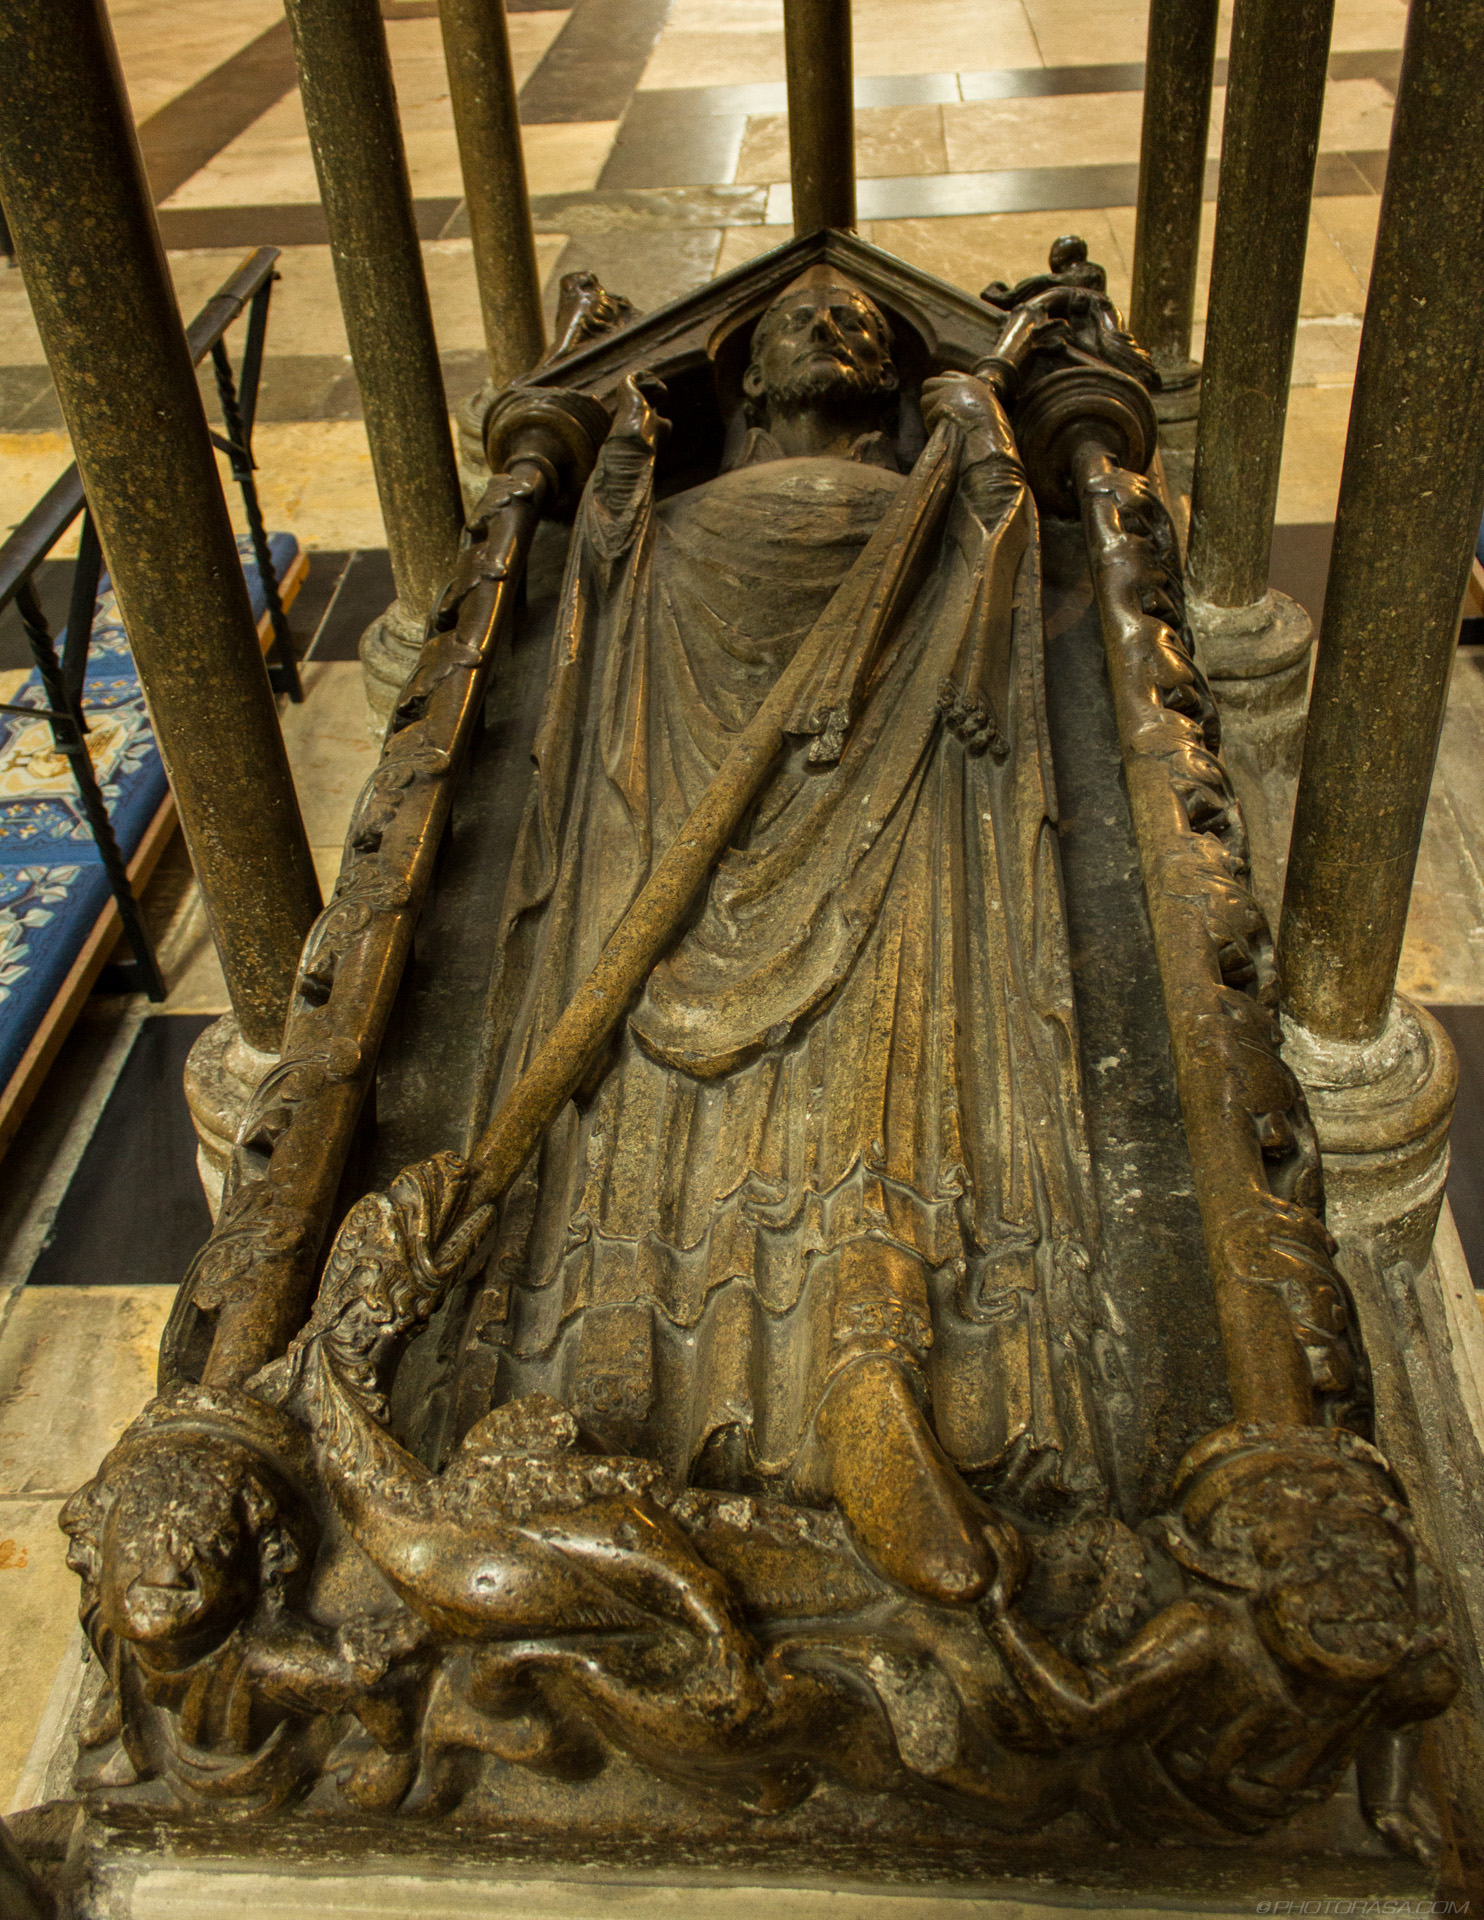 http://photorasa.com/places/yorkminster-cathedral/attachment/tomb-of-a-bishop/